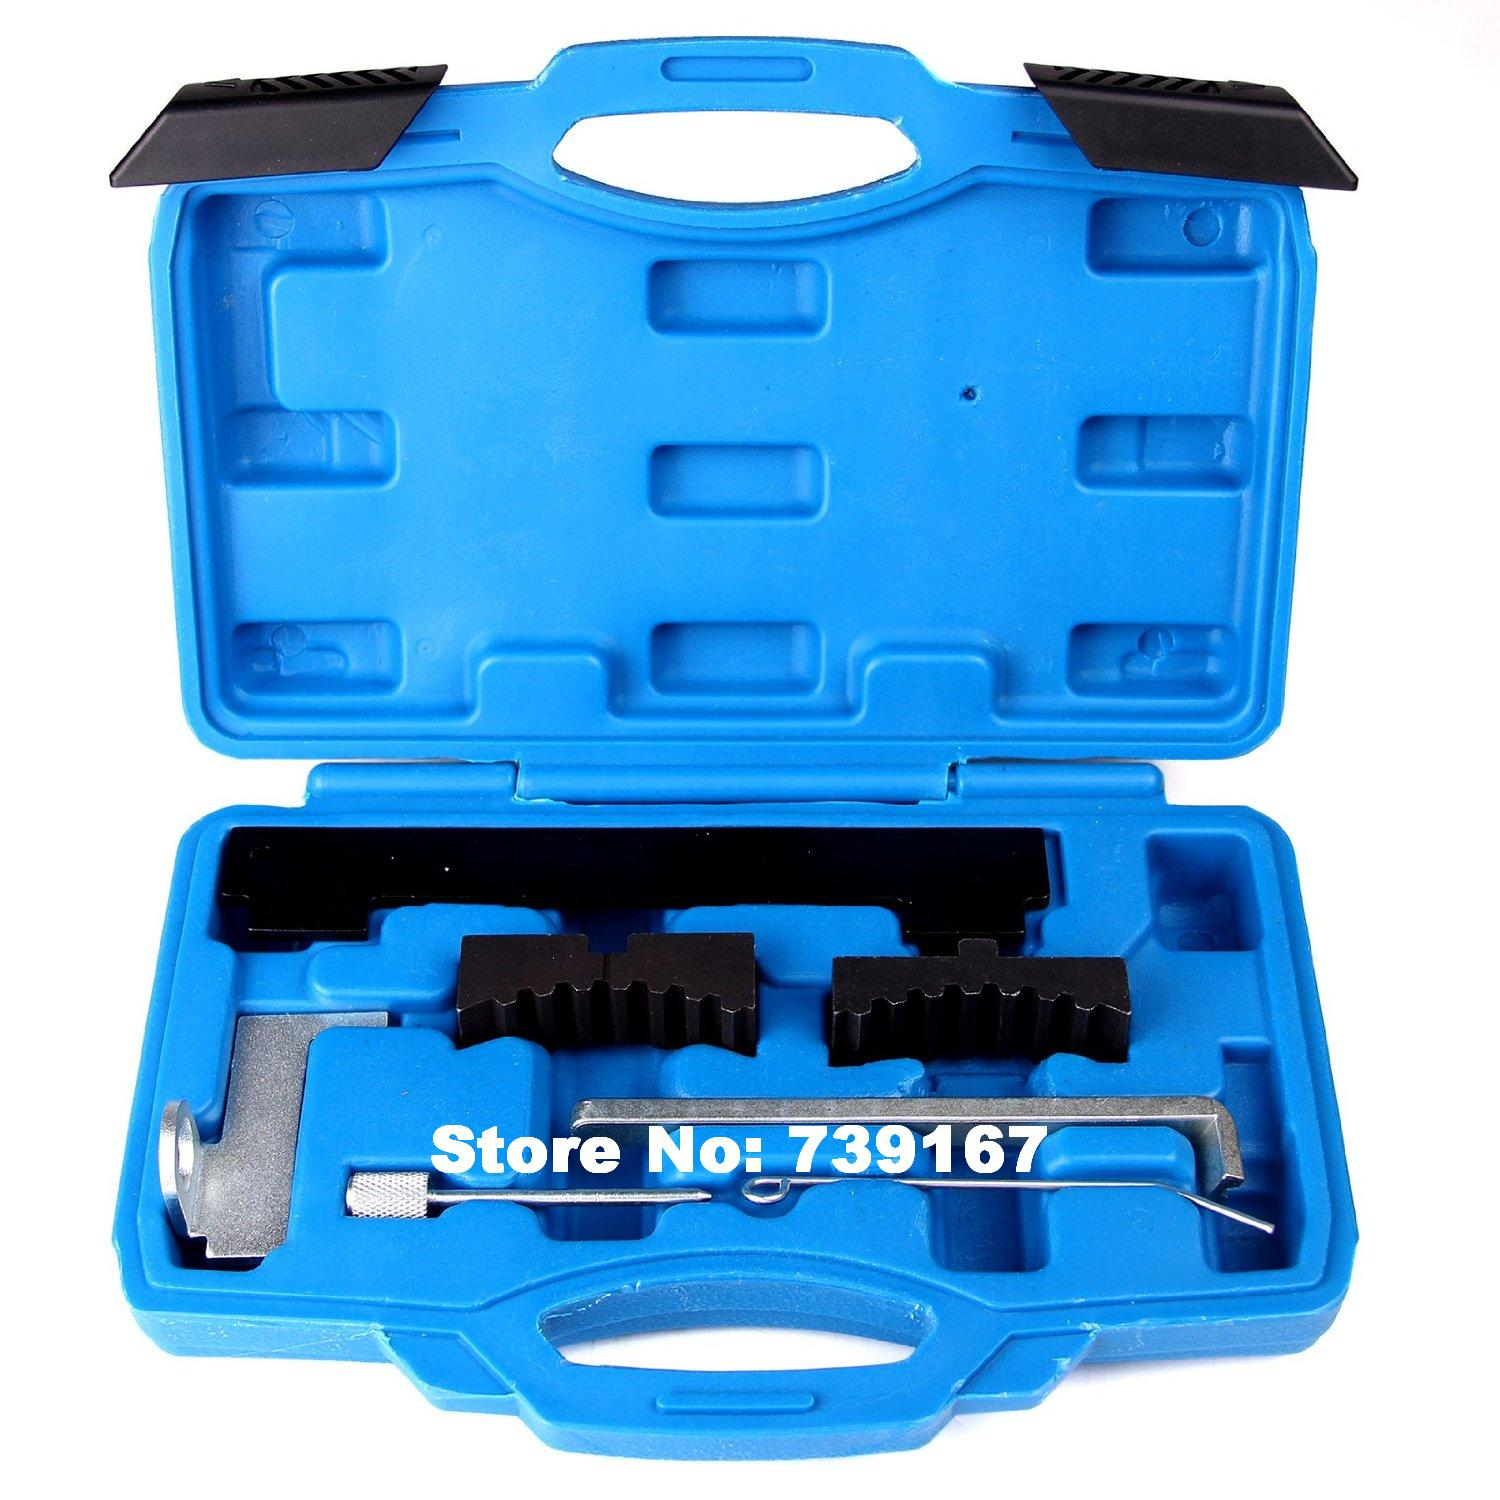 цена на Car Engine Timing Camshaft Locking Alignment Tool Auto Repair Garage Tools For Chevrolet Fiat Alfa Romeo Opel 1.4/1.6/1.8 ST0172